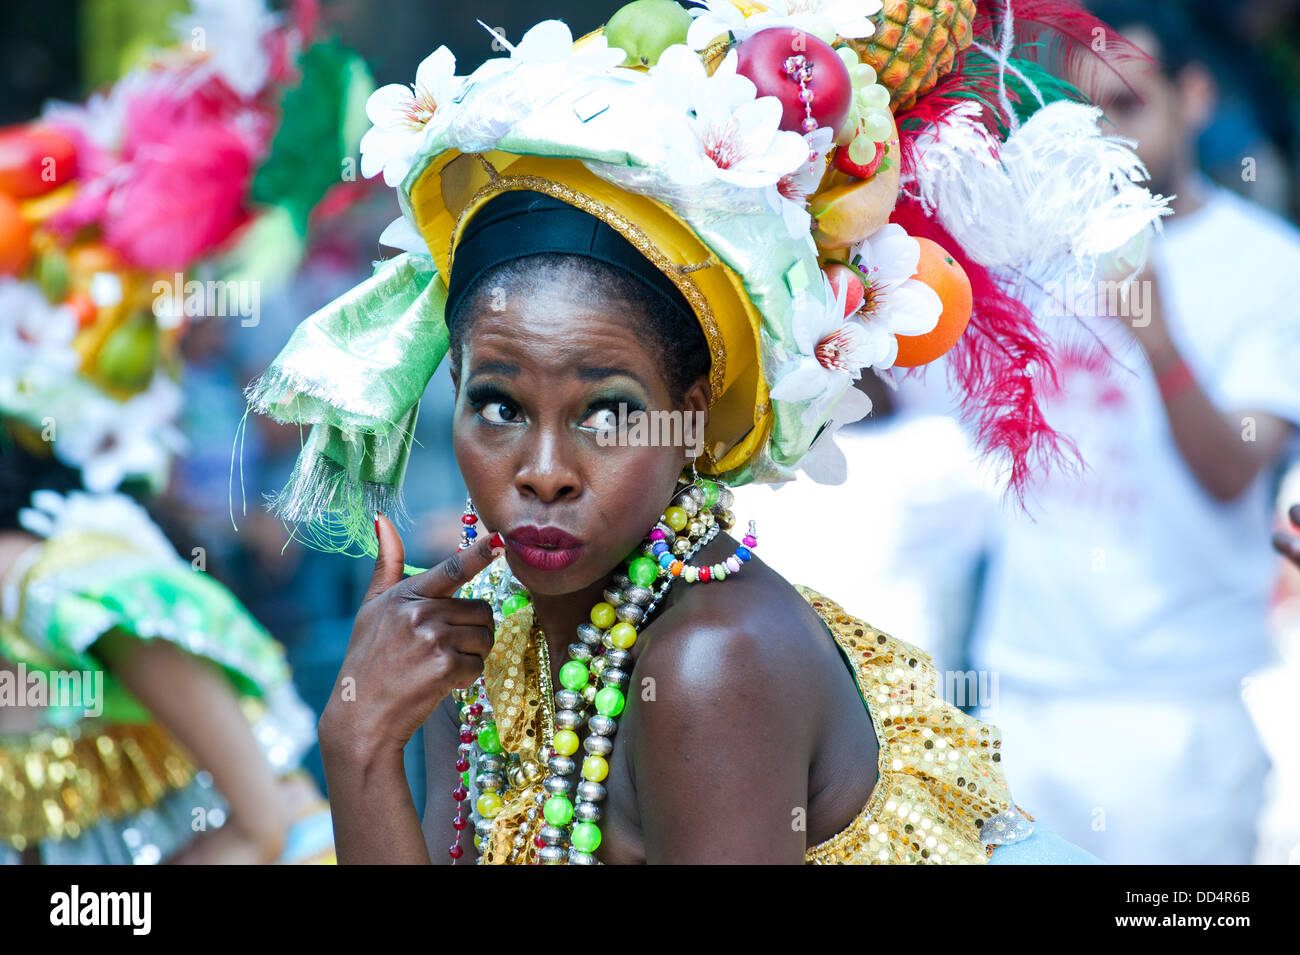 London, UK. 26th Aug, 2013. revellers take part in the annual parade at the Notting Hill Carnival. Credit:  Piero - Stock Image